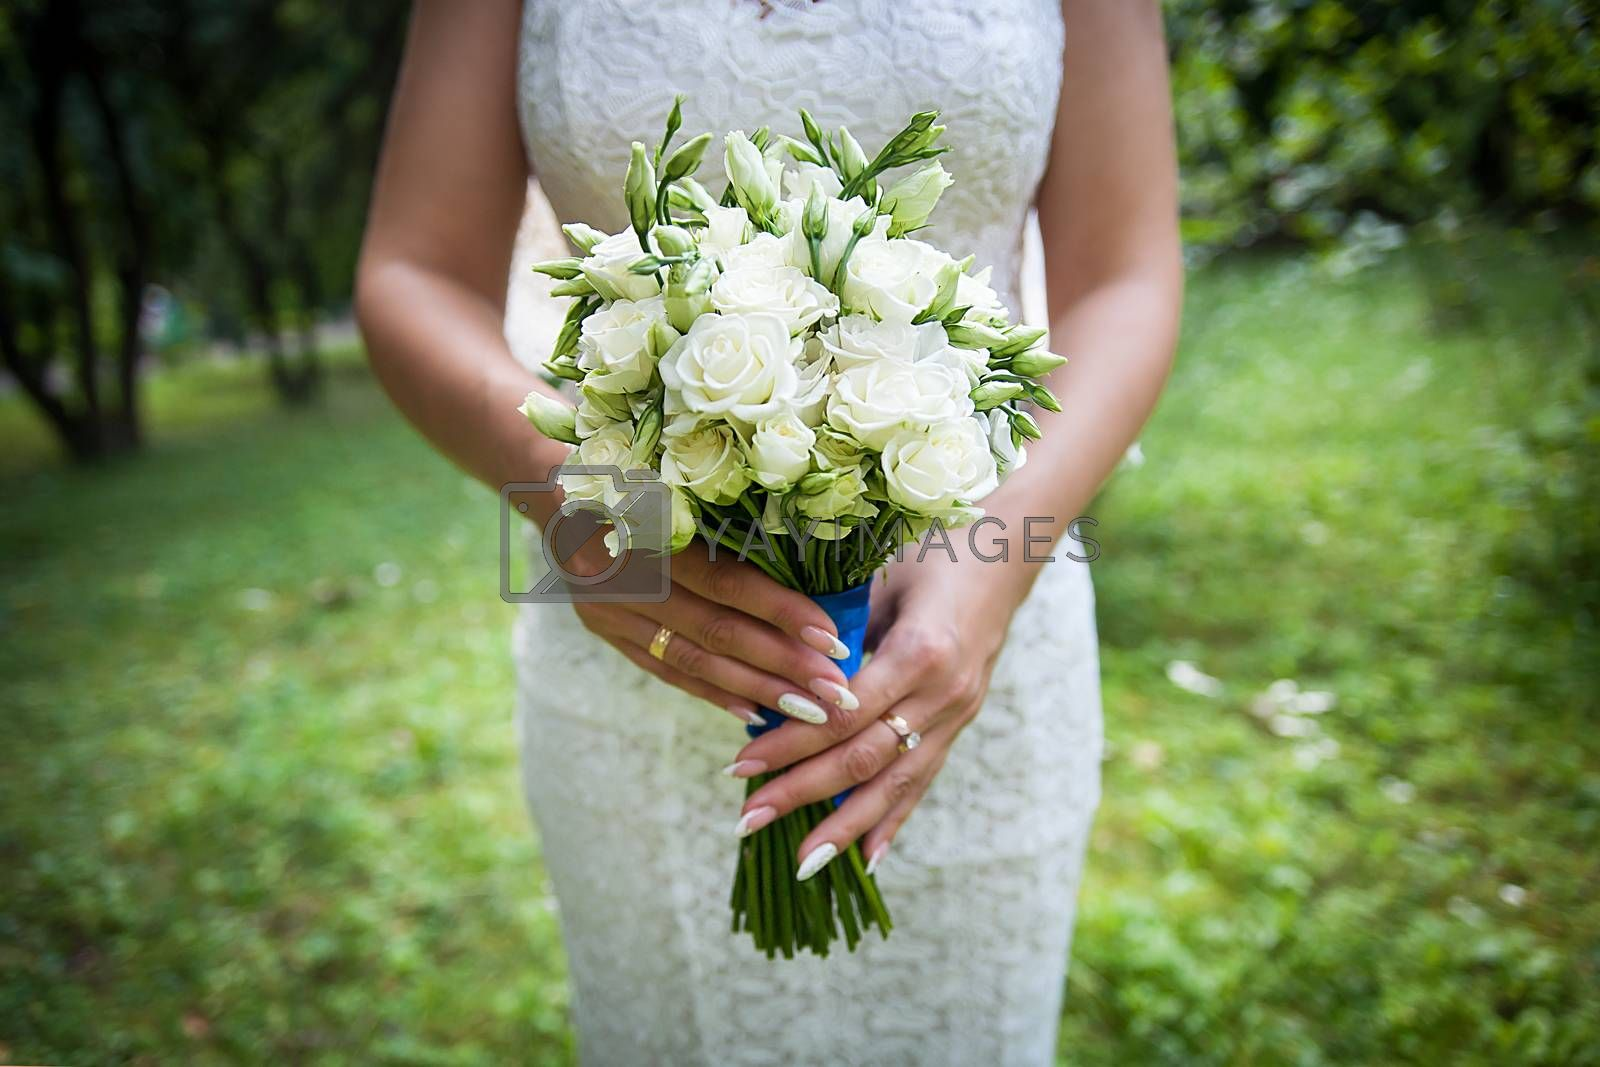 Royalty free image of Beautiful wedding bouquet in hands of the bride by sfinks